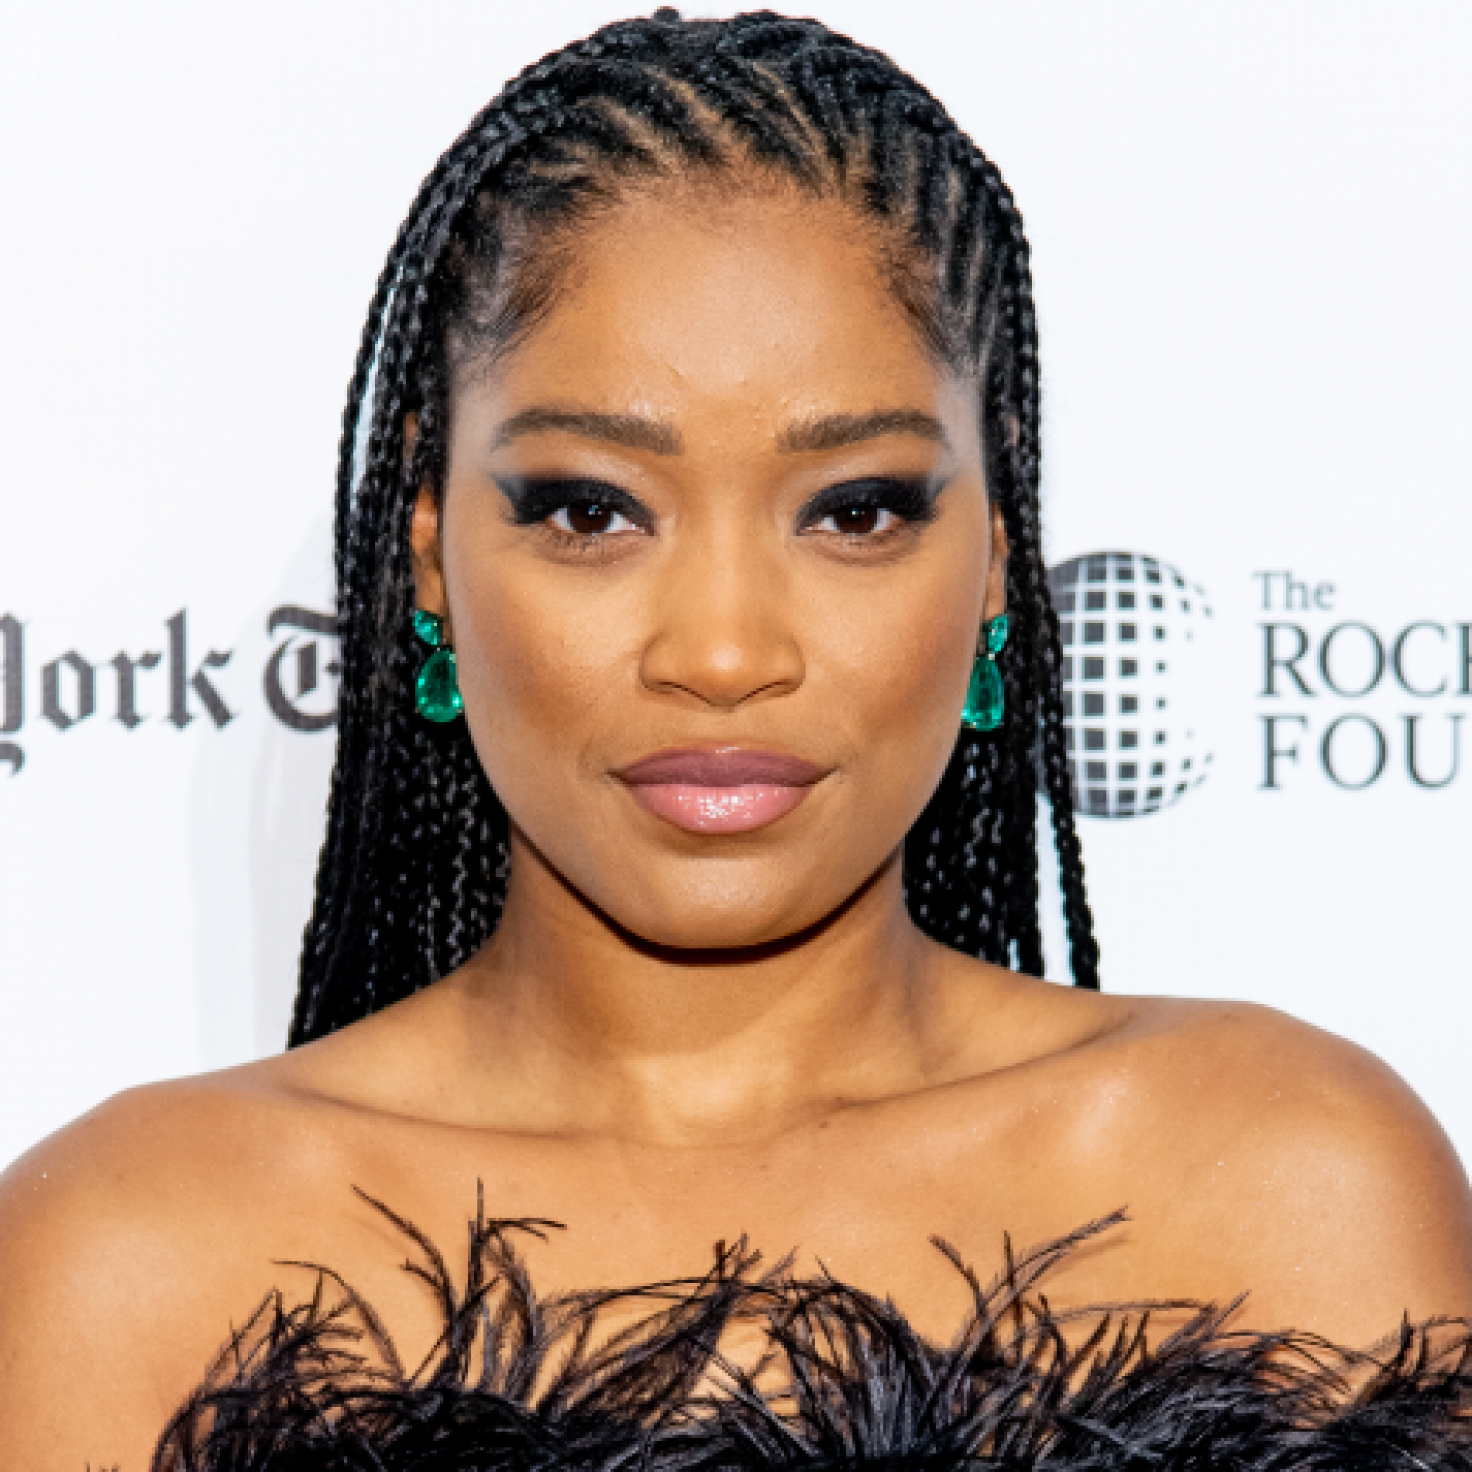 Keke Palmer Is The Queen Of Quarantine Beauty Looks